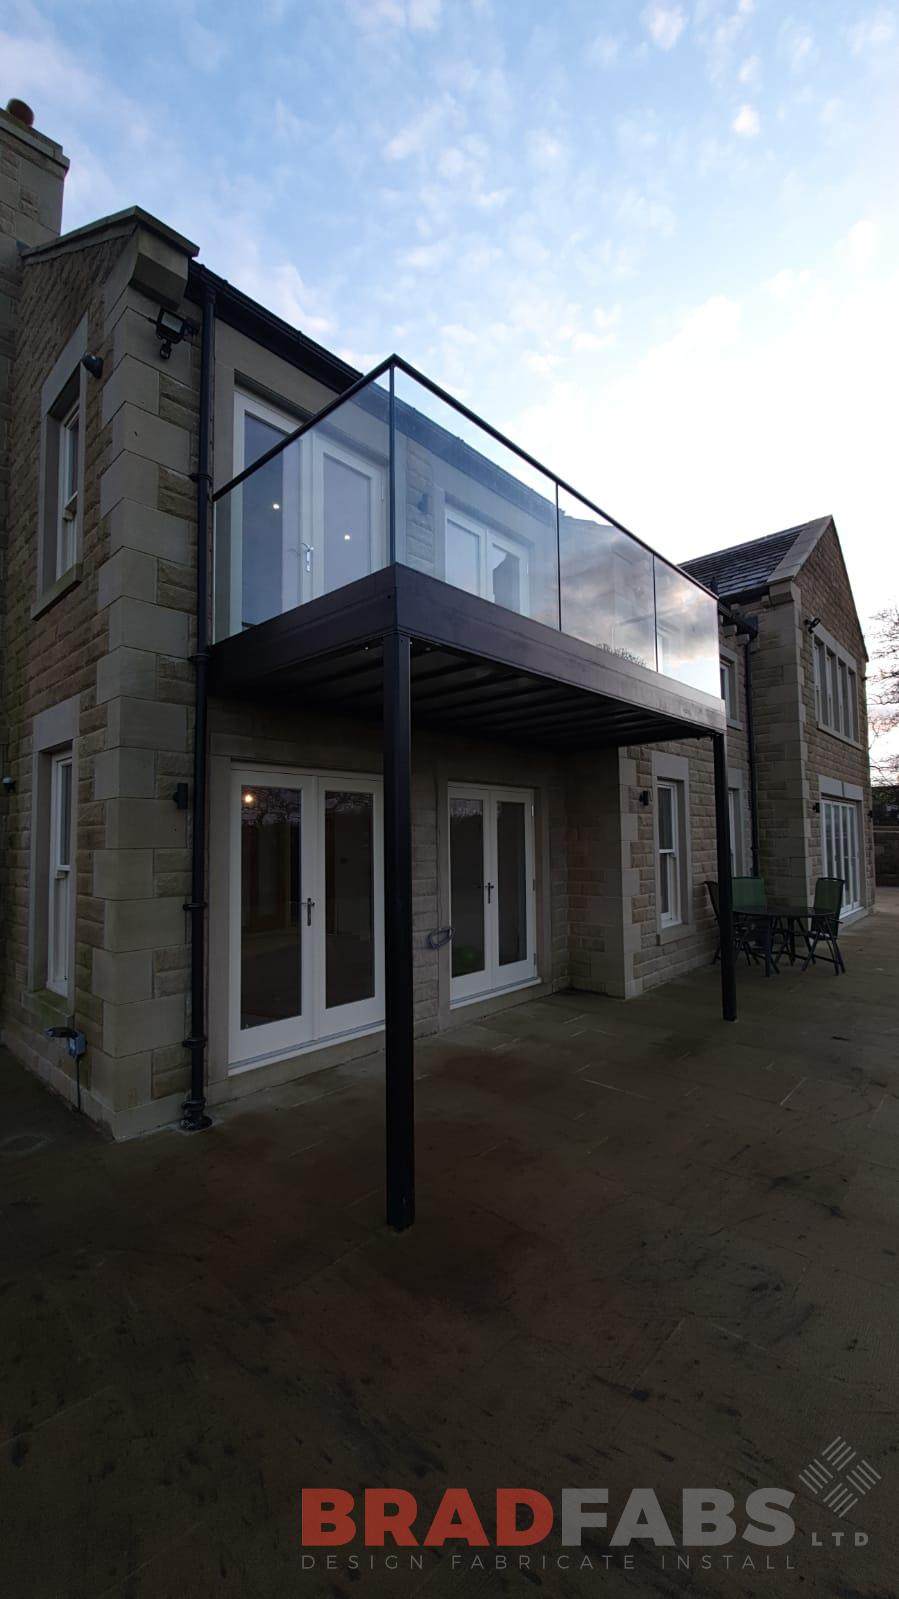 mild steel powder coated and galvanised toprail with glass balustrade by bradfabs ltd